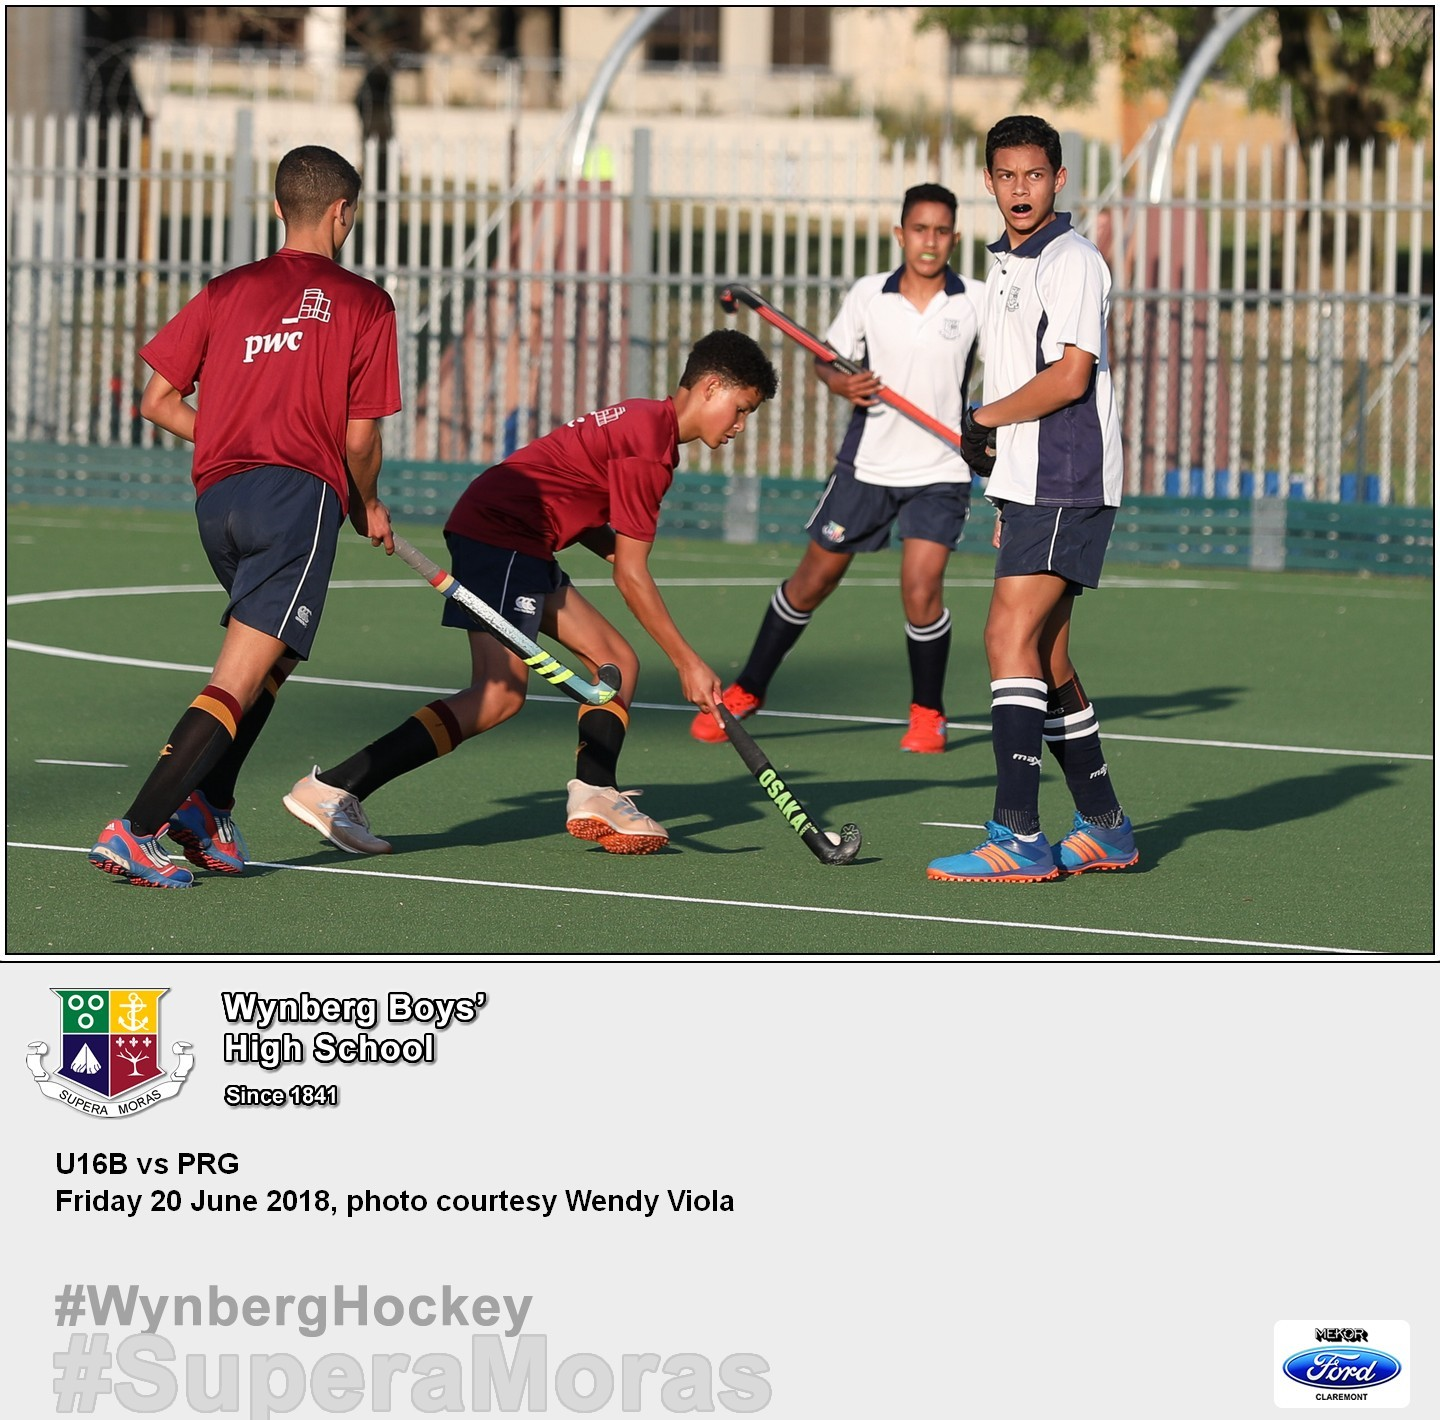 U16B vs Paul Roos, Friday 20 July 2018